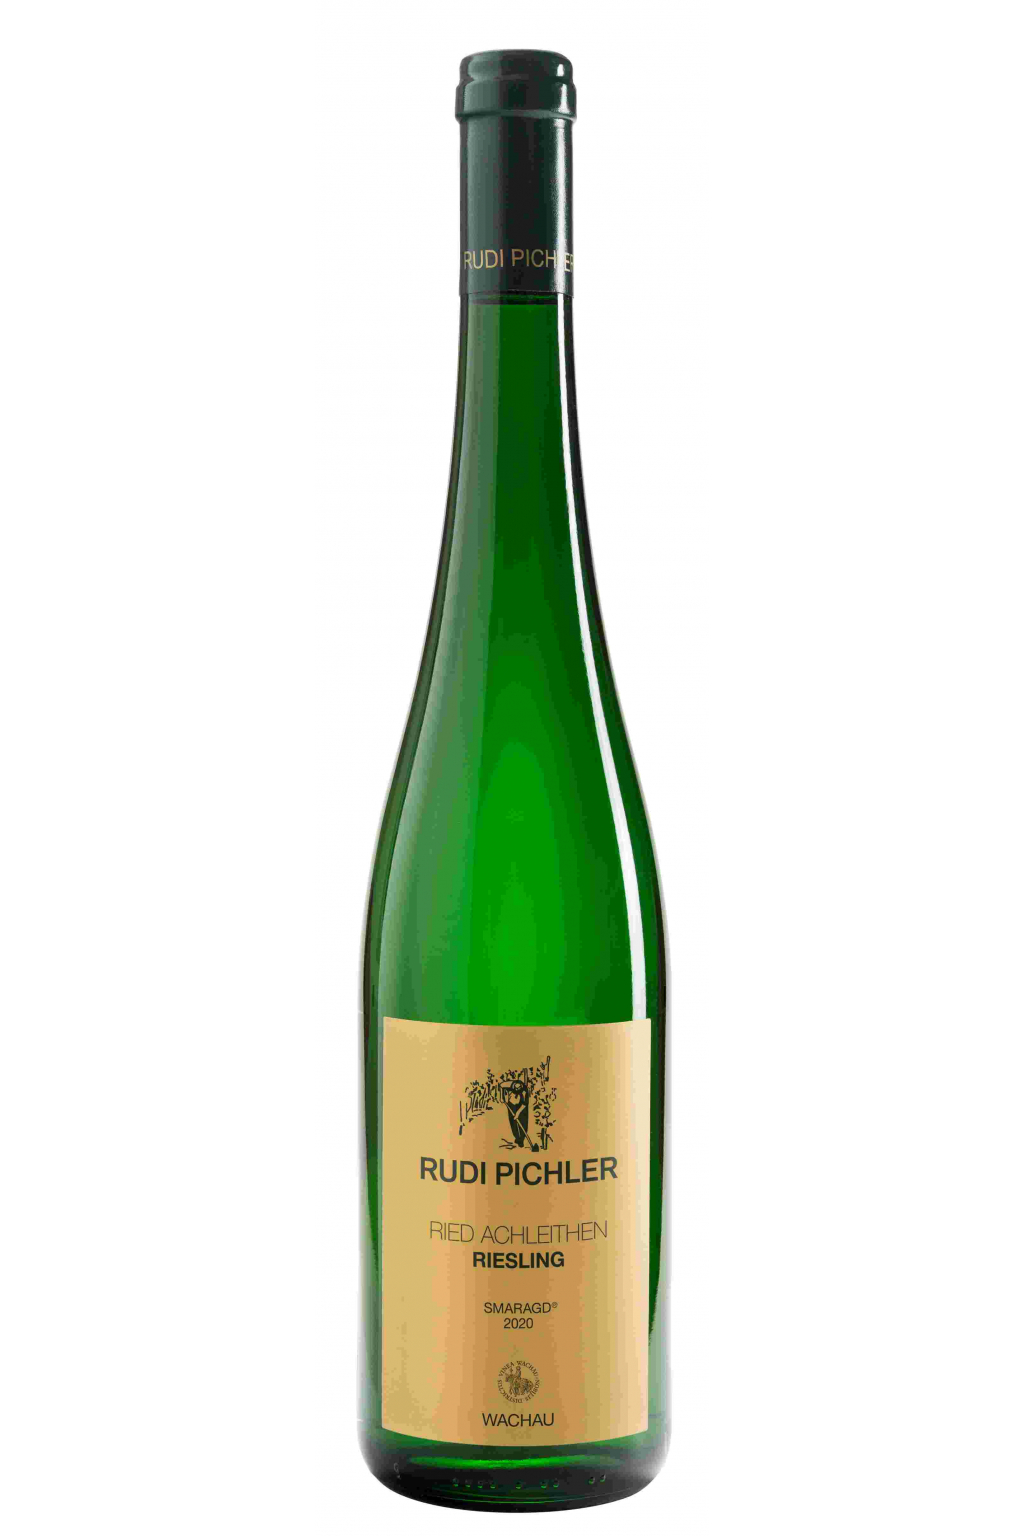 RudiPichler Riesling Ried Achleithen Smaragd 2020 web